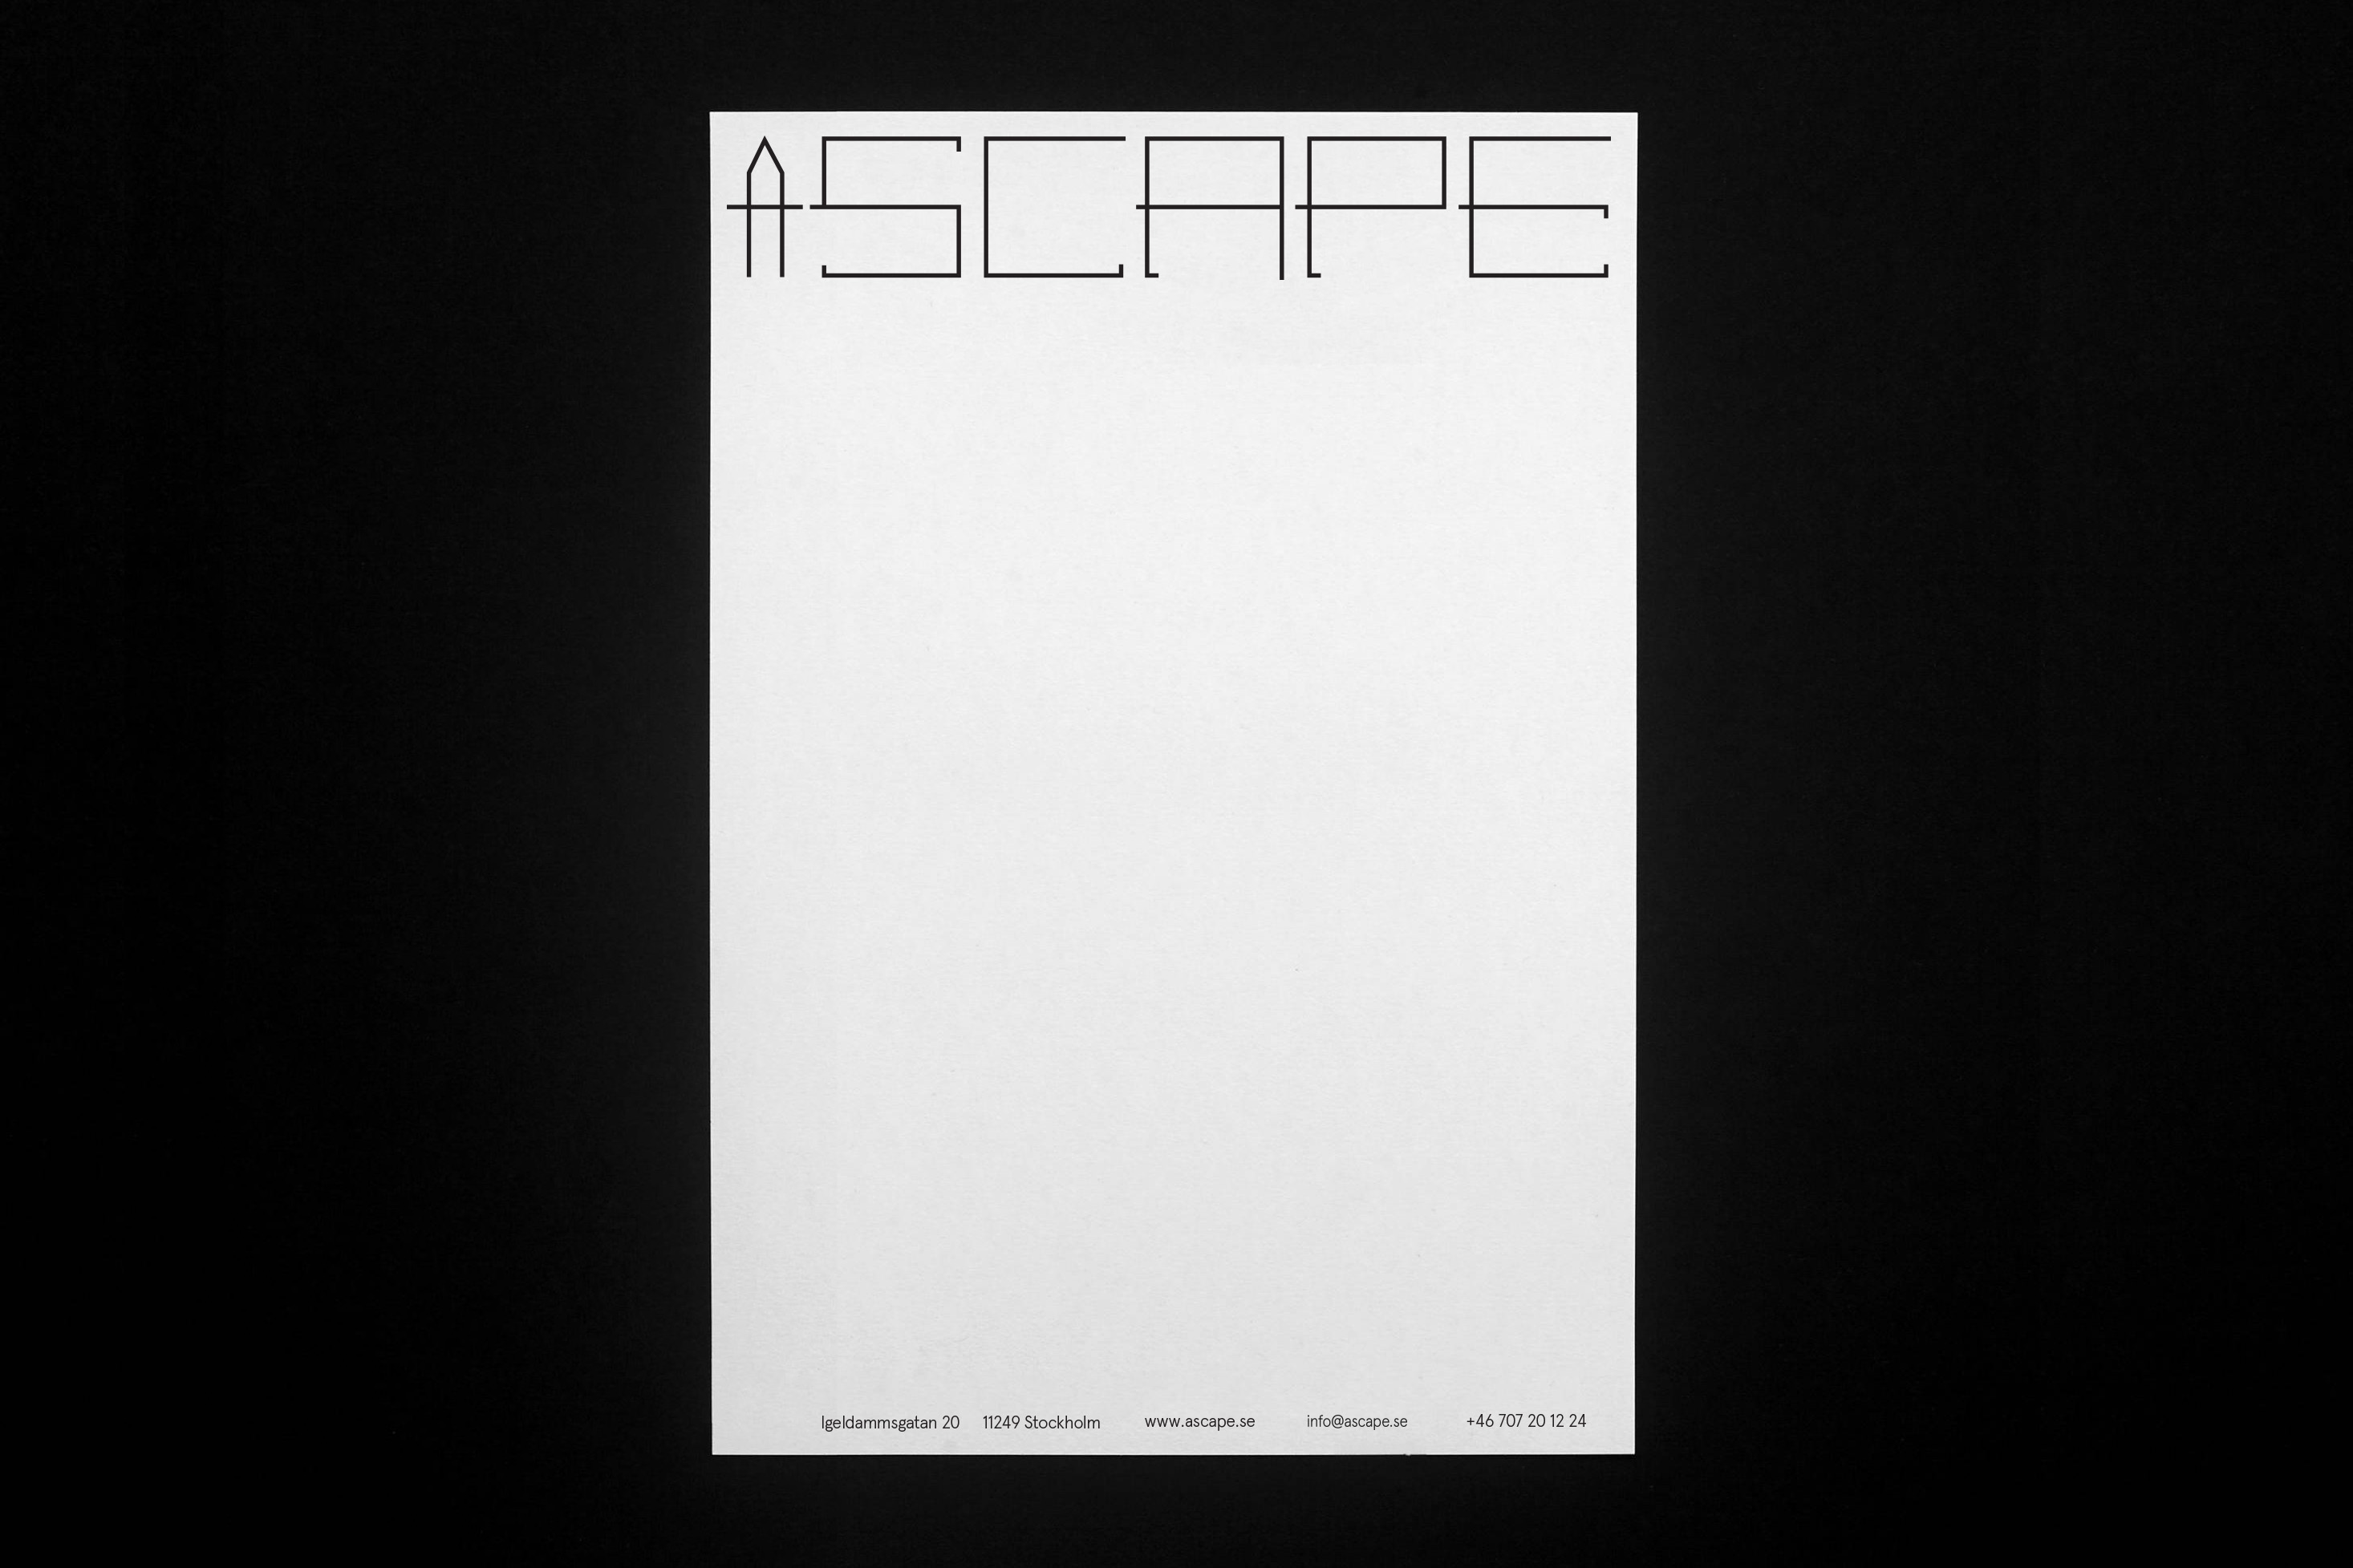 LF Protected: Ascape Architects